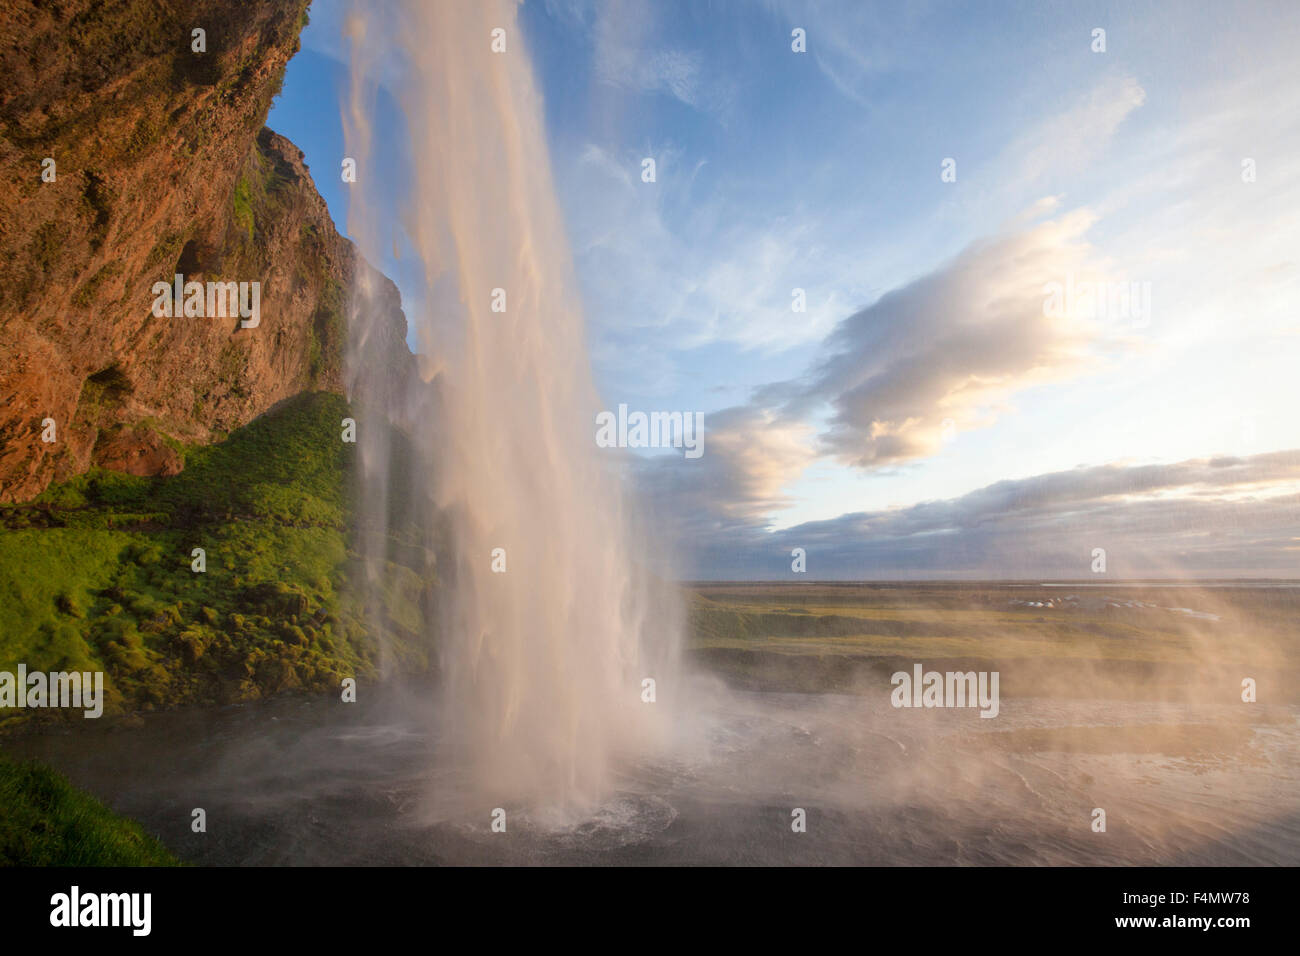 Seljalandsfoss waterfall plunging 60m from the cliff above, Sudhurland, Iceland. - Stock Image